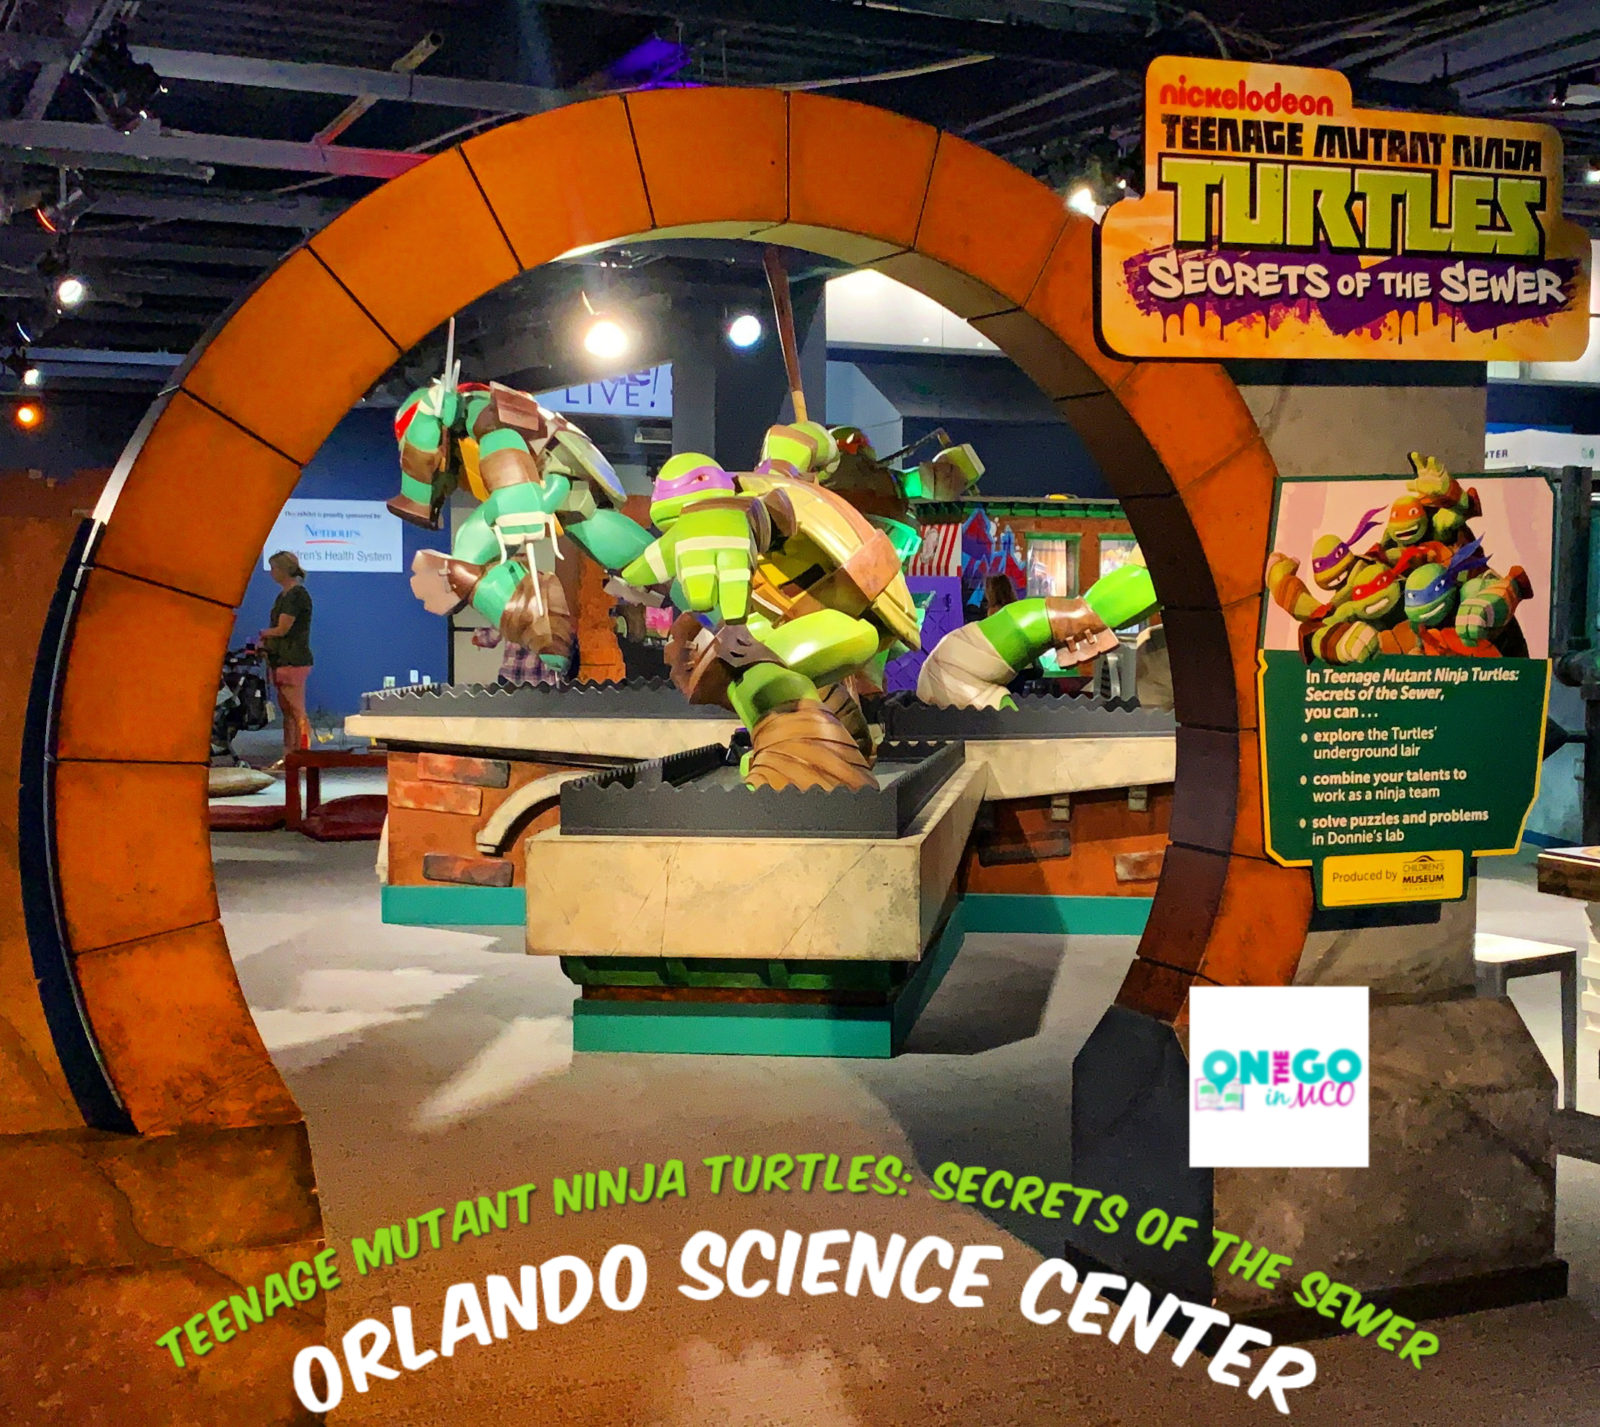 Teenage Mutant Ninja Turtles Orlando Science Center Summer 2019